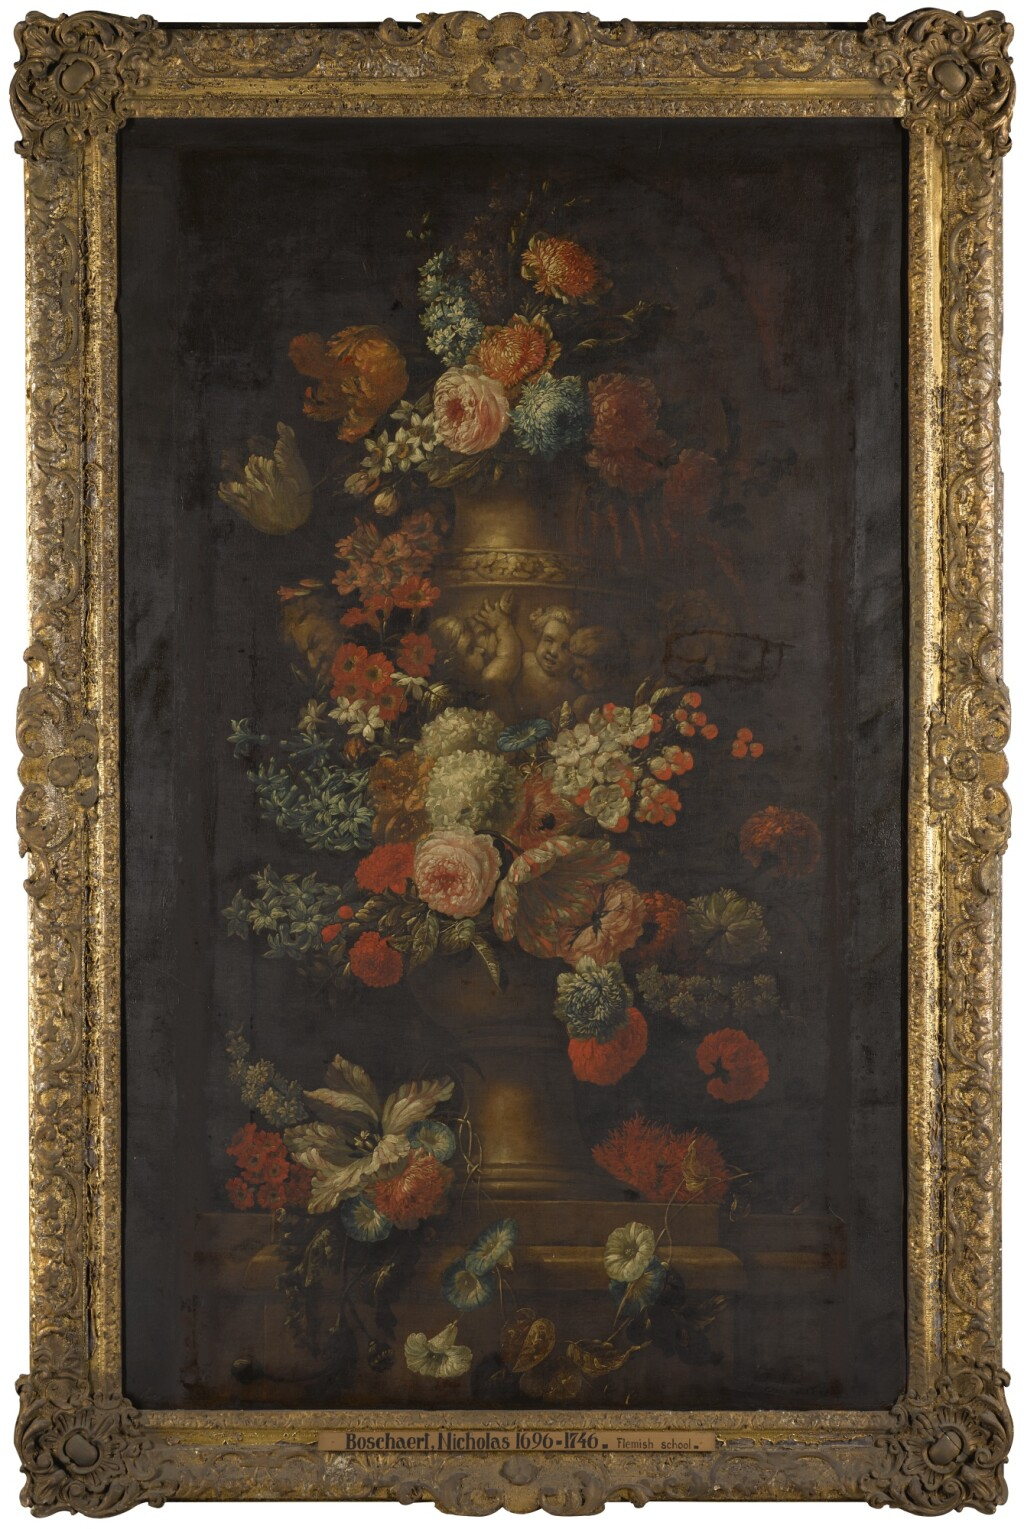 JAN BAPTIST BOSSCHAERT | Still life of flowers including tulips, roses, and turban rannunuculous, in a stone urn decorated with putti, all on a stone ledge